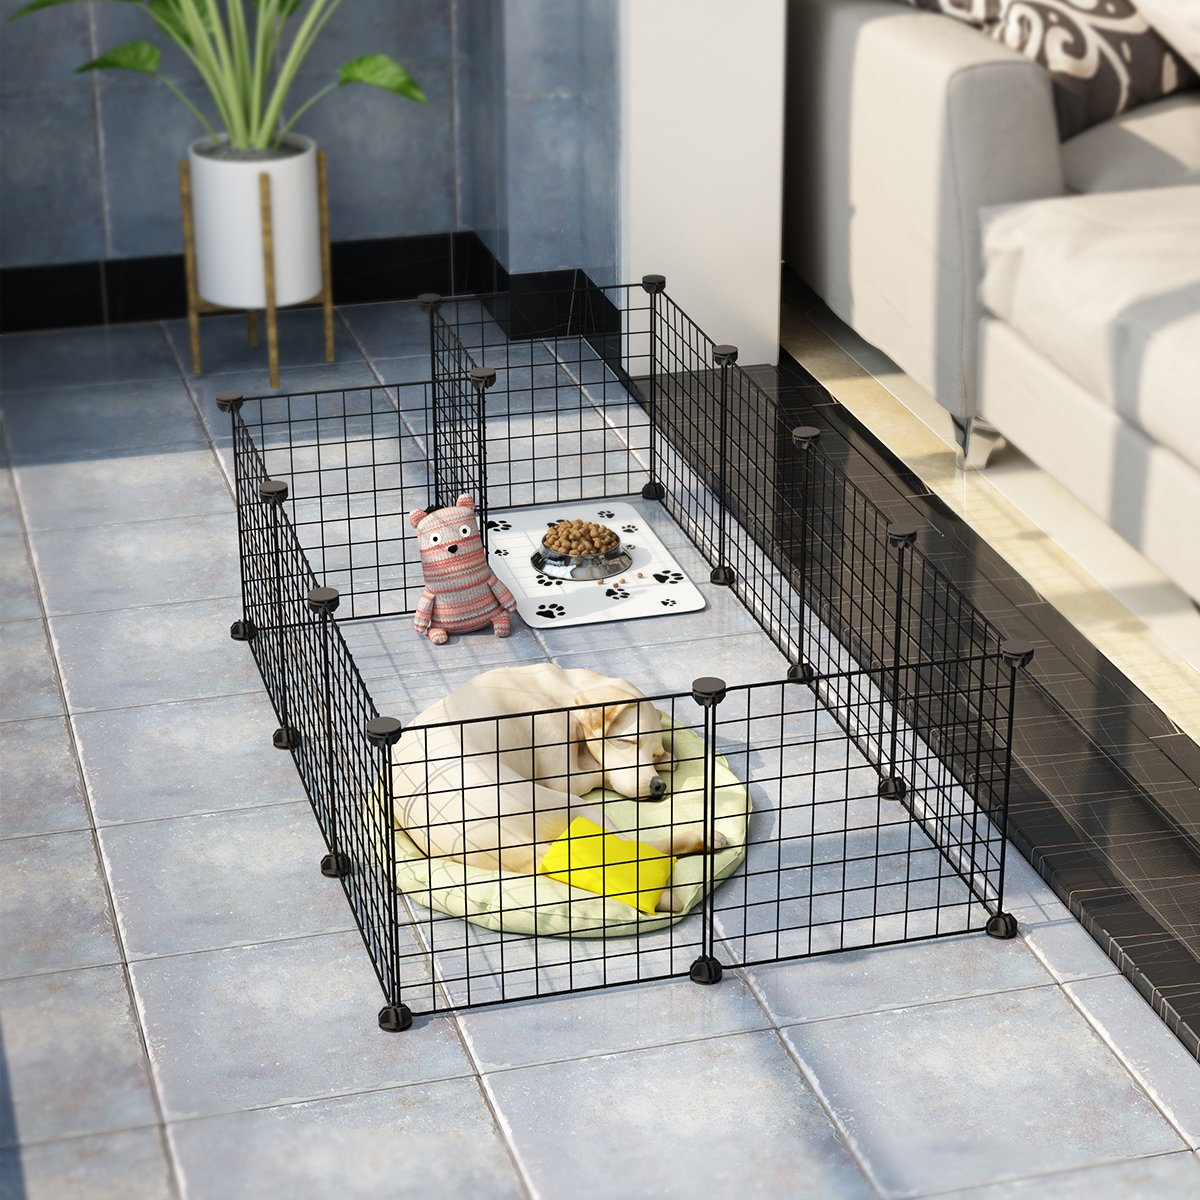 LANGRIA 24 pcs Metal Wire Storage Cubes Organizer, DIY Small Animal Cage for Rabbit, Guinea Pigs, Puppy | Pet Products Portable Metal Wire Yard Fence (Black) by LANGRIA (Image #2)